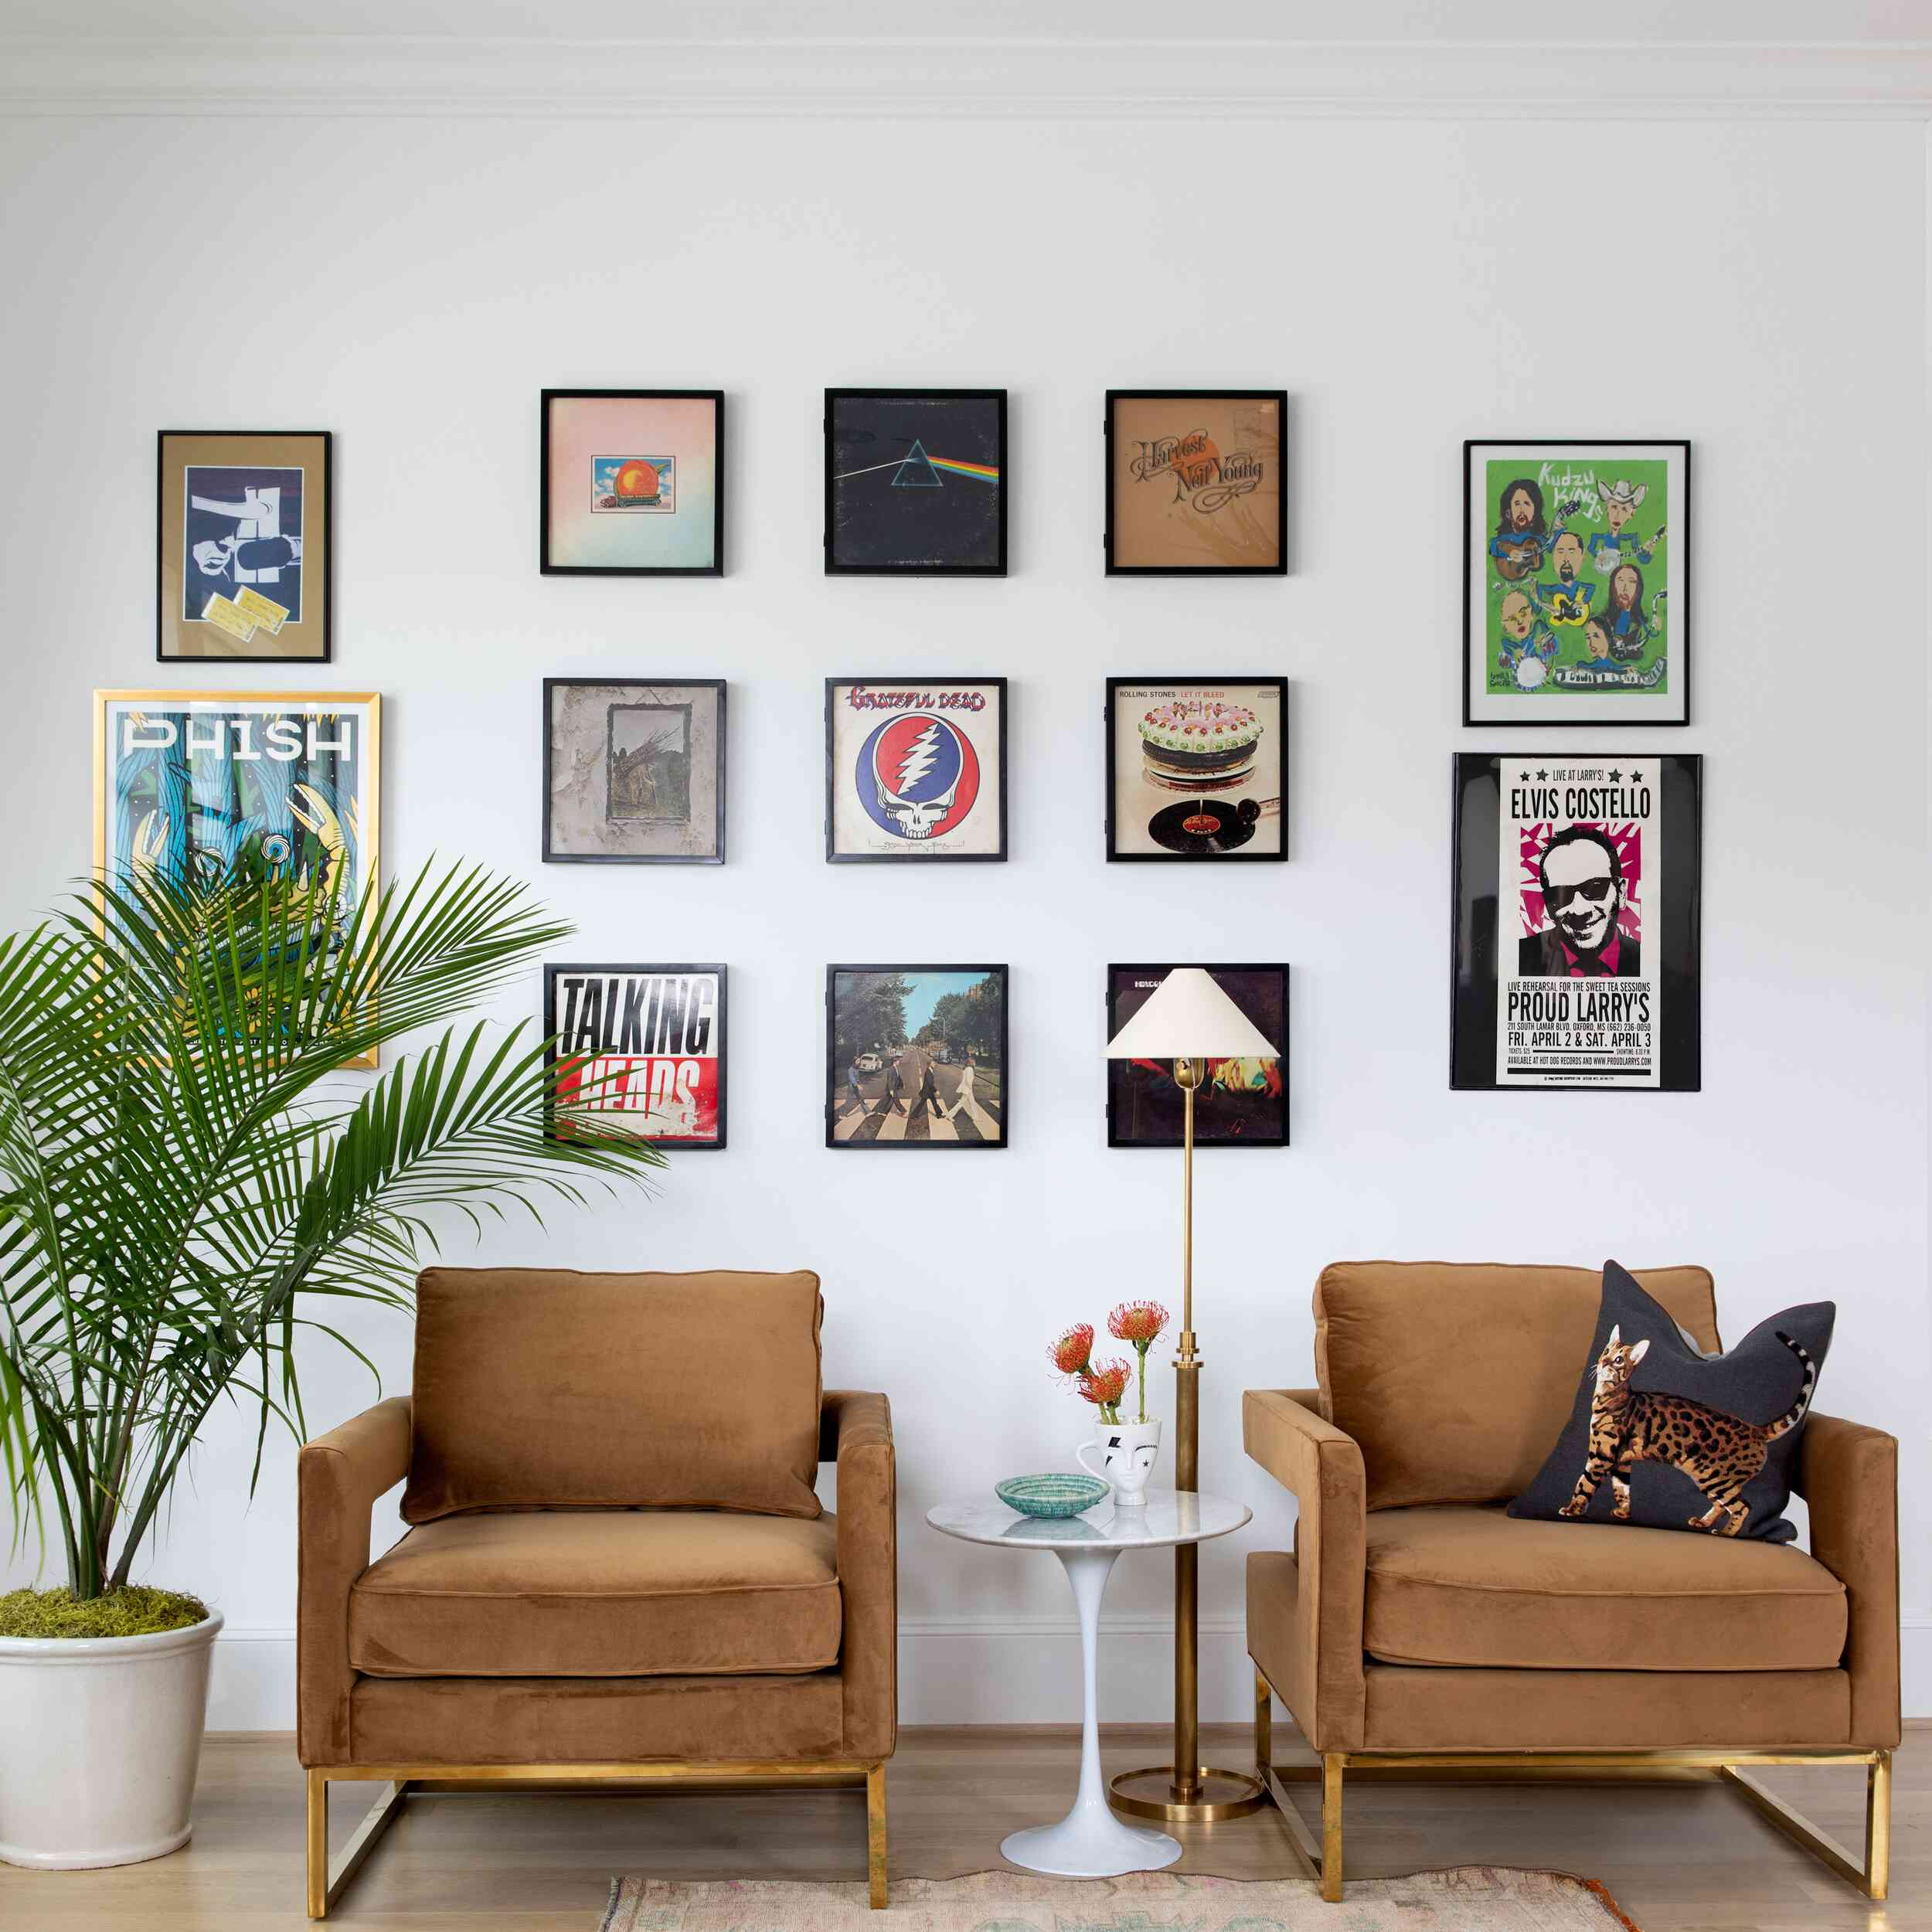 A living room with two lounge chairs and lots of framed graphic art